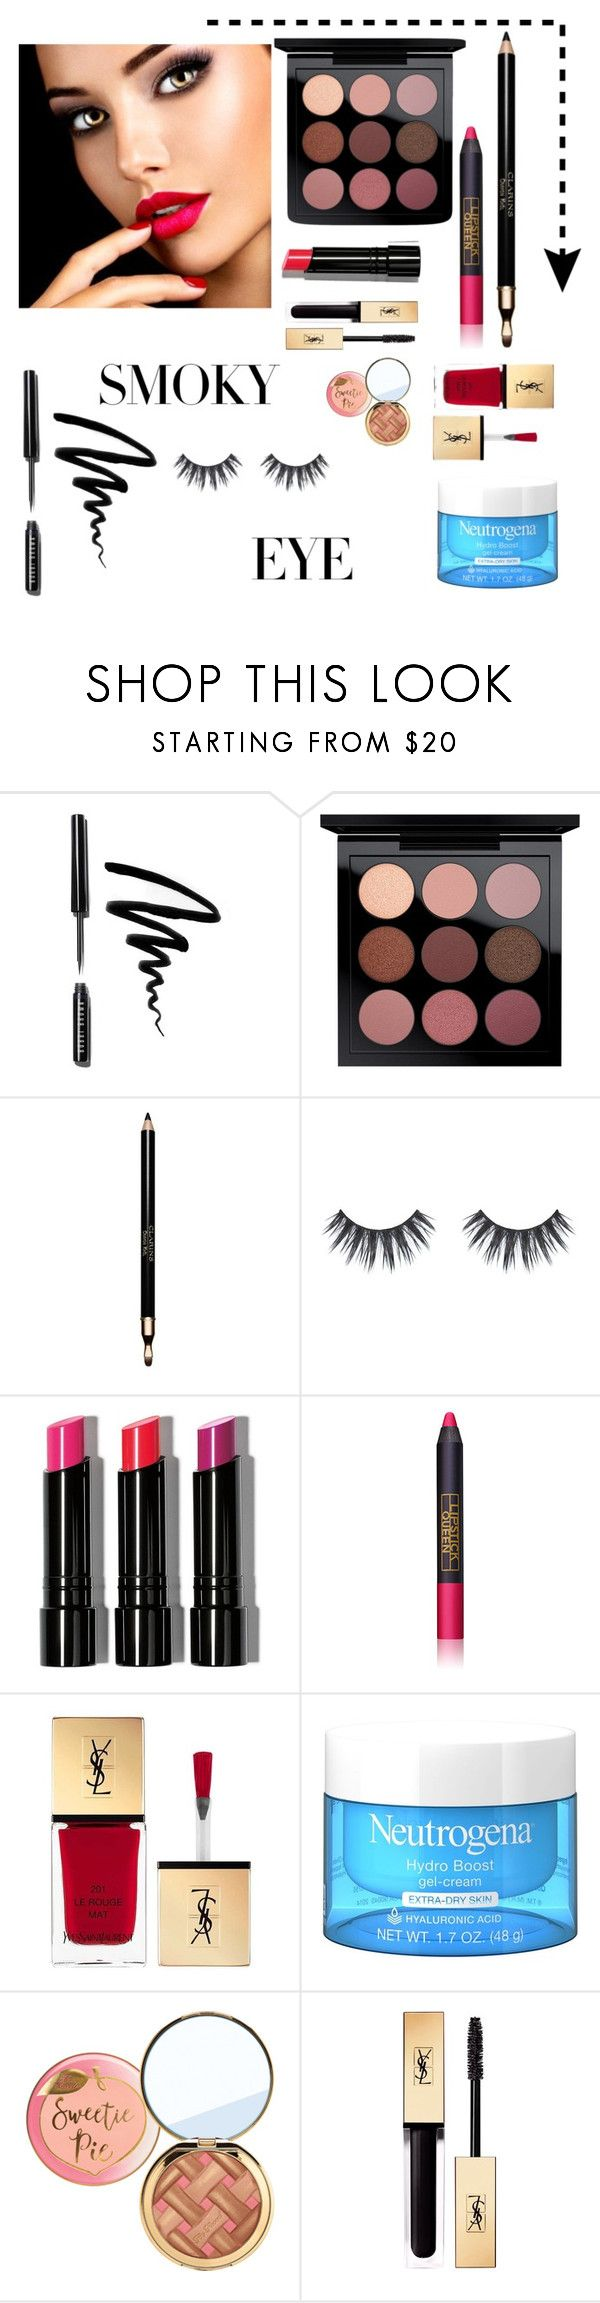 """""""Smoky Eye #2"""" by lauren-ilana ❤ liked on Polyvore featuring beauty, Bobbi Brown Cosmetics, MAC Cosmetics, Clarins, Lipstick Queen, Yves Saint Laurent and makeupset"""